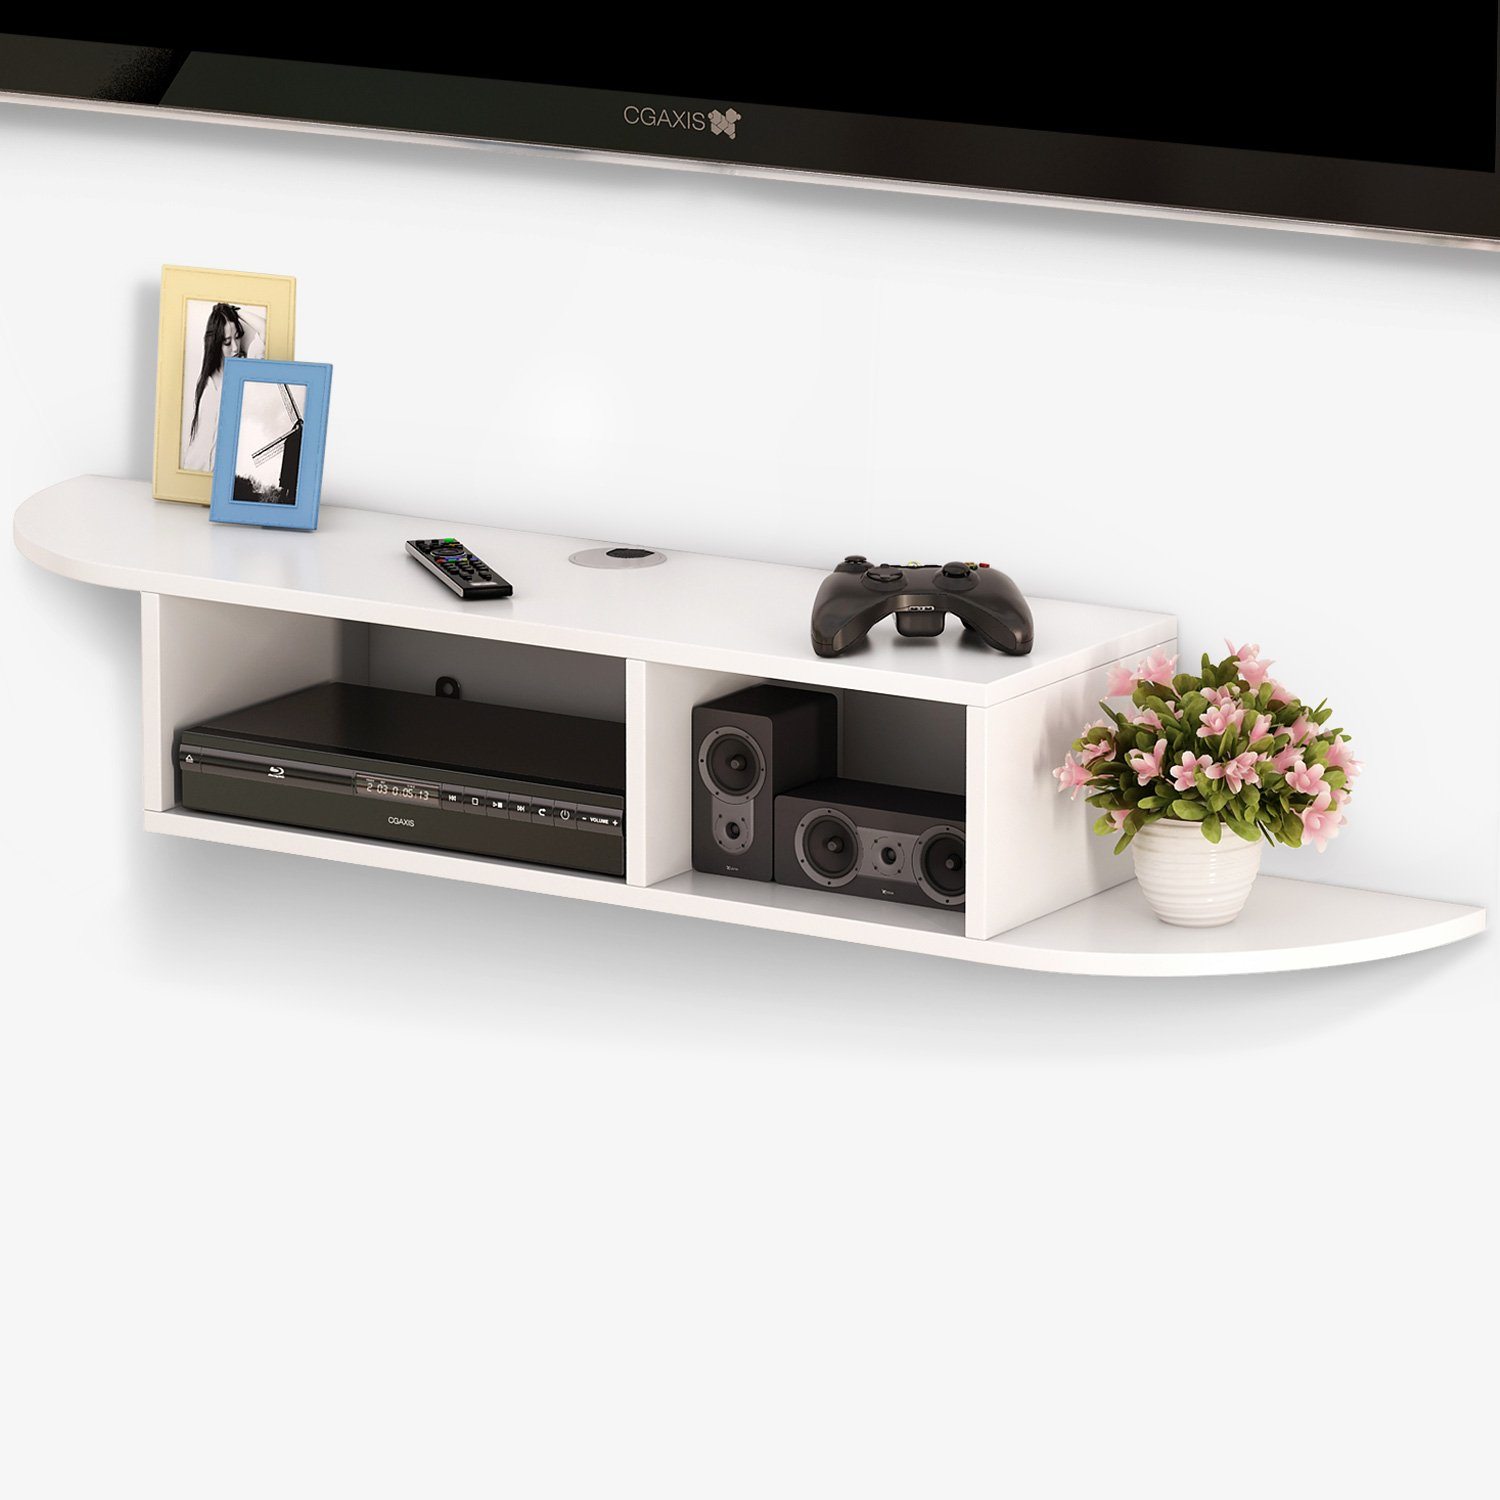 tribesigns tier modern wall mount floating shelf shelves for game consoles console inch cable boxes routers remotes dvd players white closet solutions building secret compartments